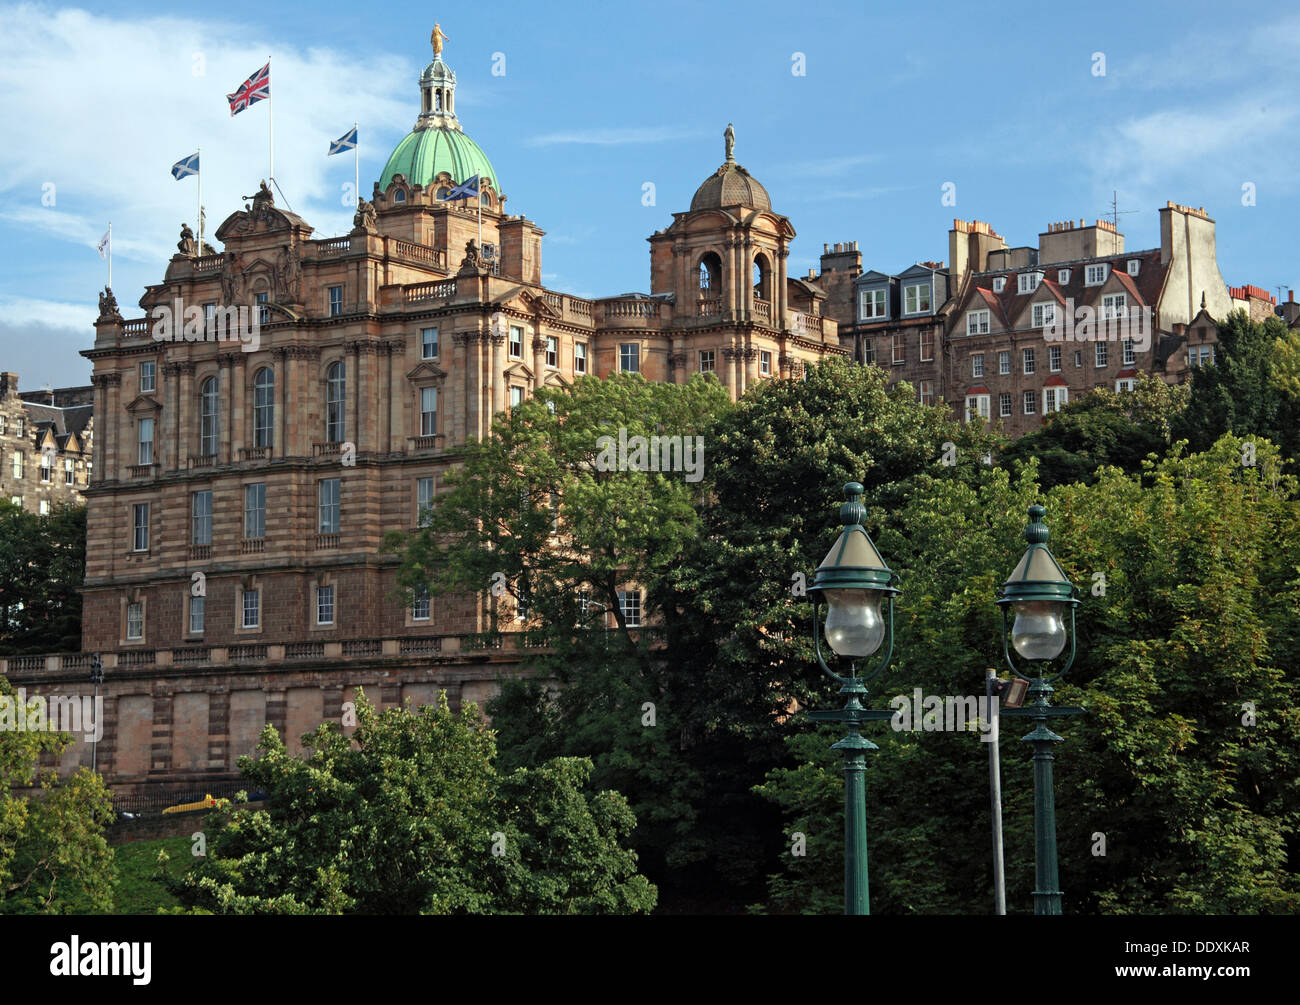 Bank of Scotland office headquarters, The Mound, Edinburgh, Scotland, UK Stock Photo